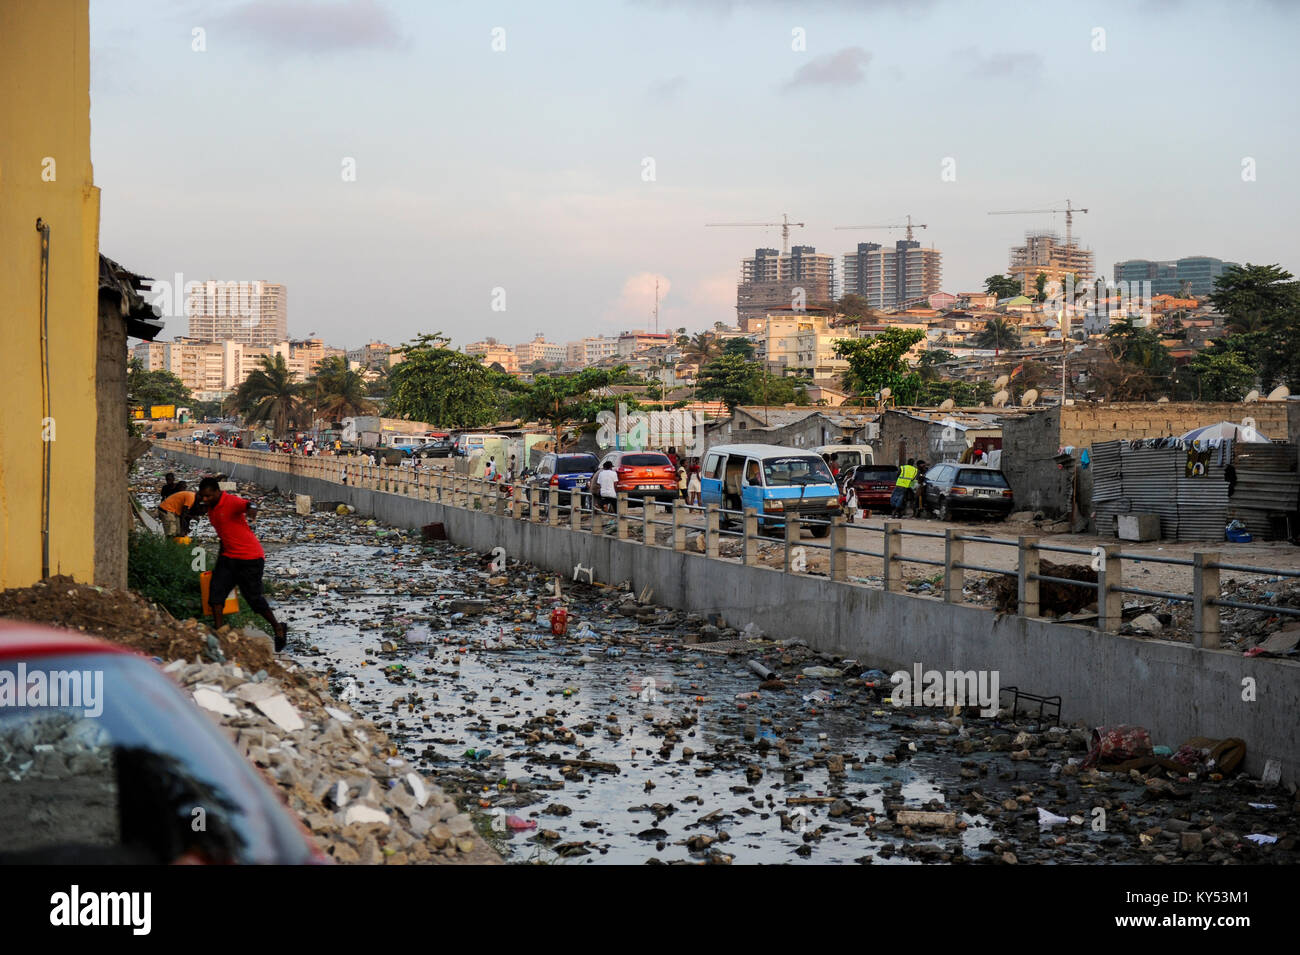 ANGOLA Luanda, due to revenues from oil and diamond exports a construction boom is seen everwhere and the real estate - Stock Image